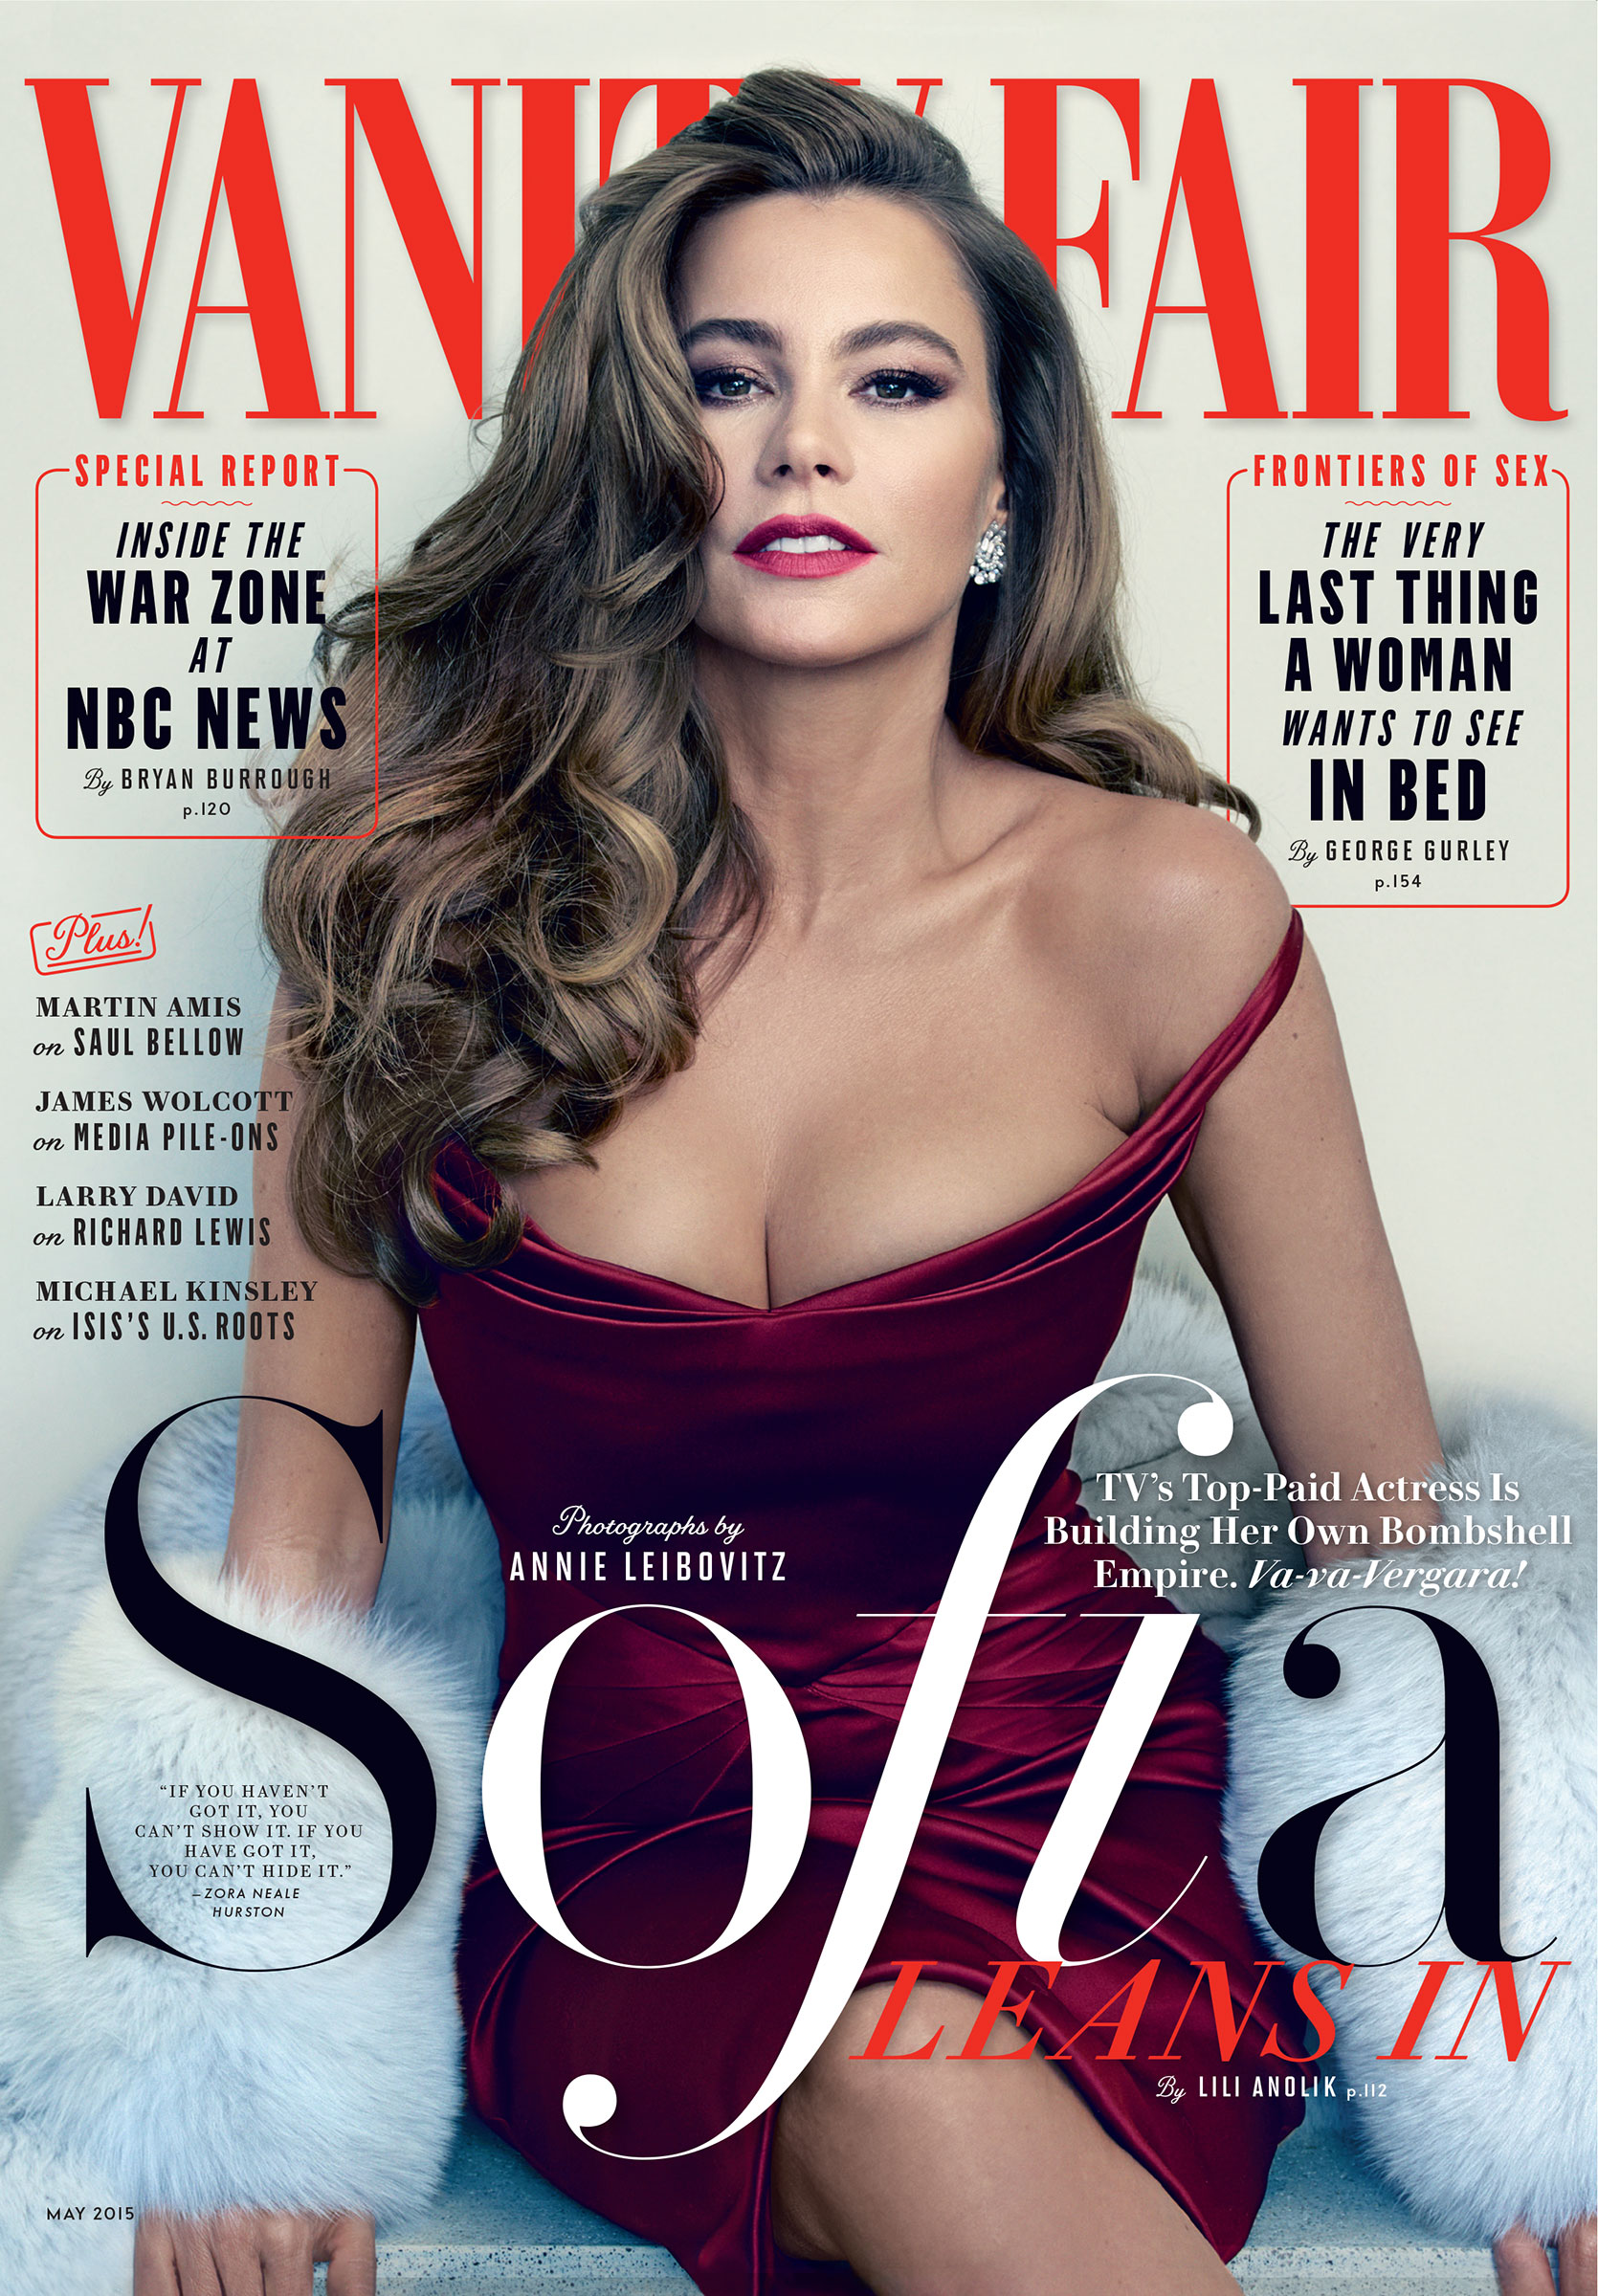 Vanity_Fair_SOFIA_VERGARA_COVER_MAY_15